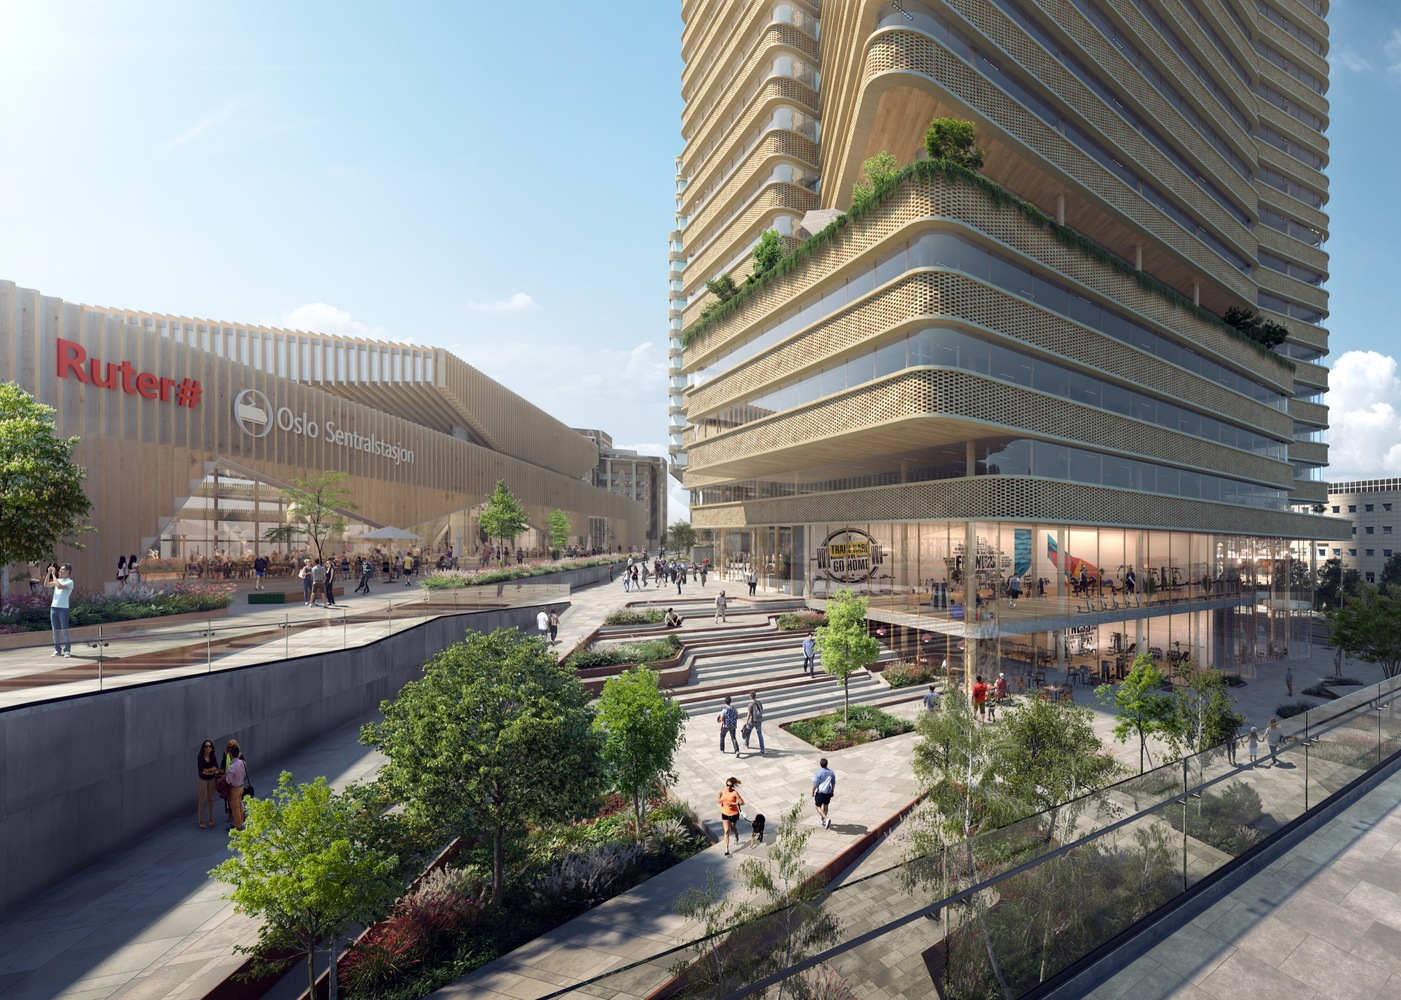 C.F. Møller Architects Release Images of Proposed Urban Realm for Oslo Central Station,Courtesy of C.F. Møller Architects